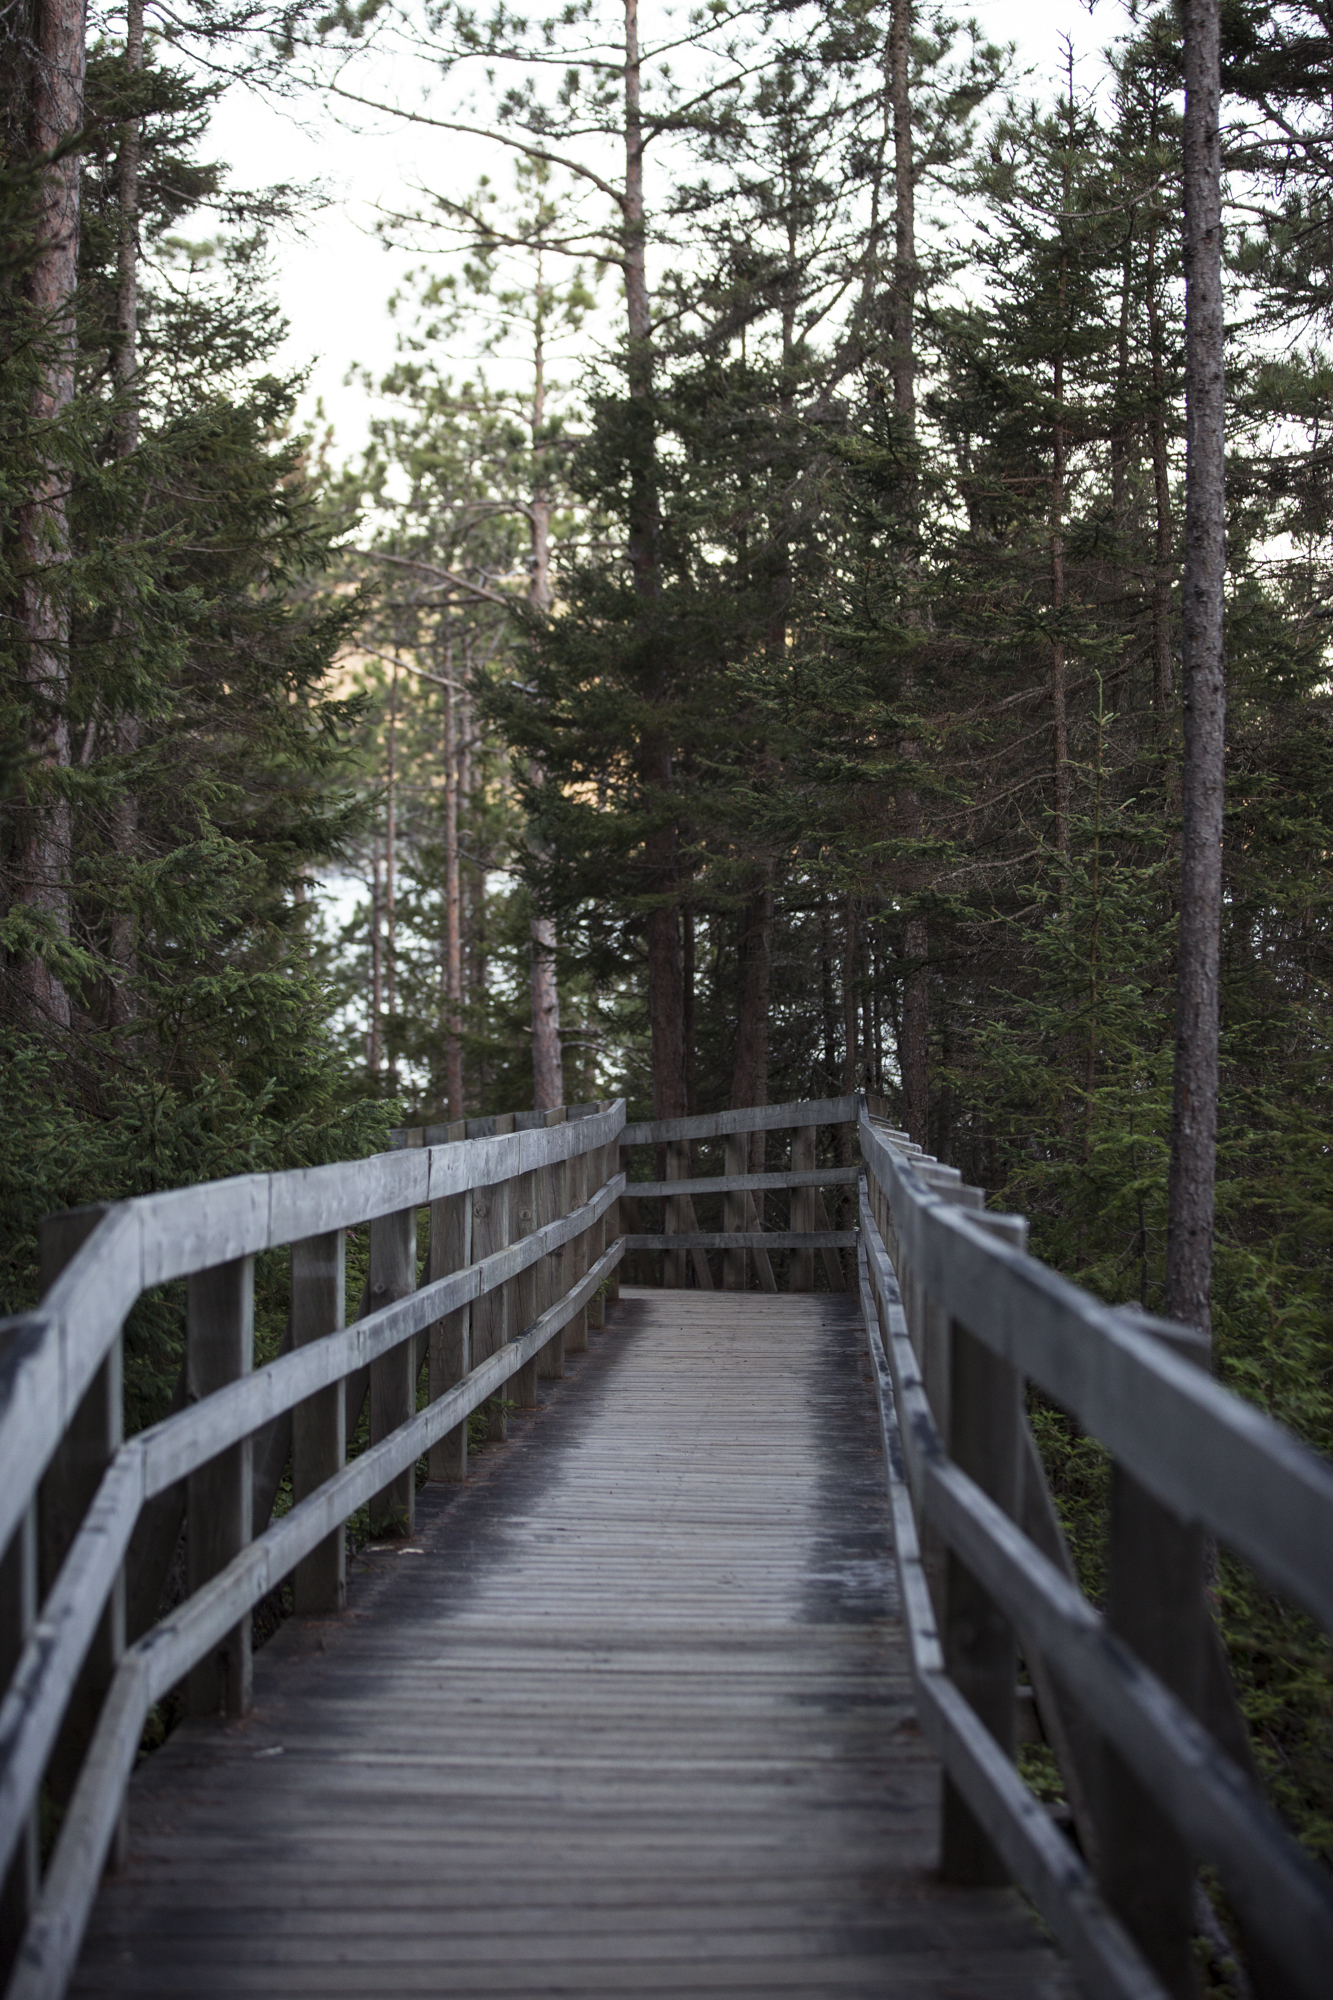 The boardwalk leading to the Beluga lookout point.